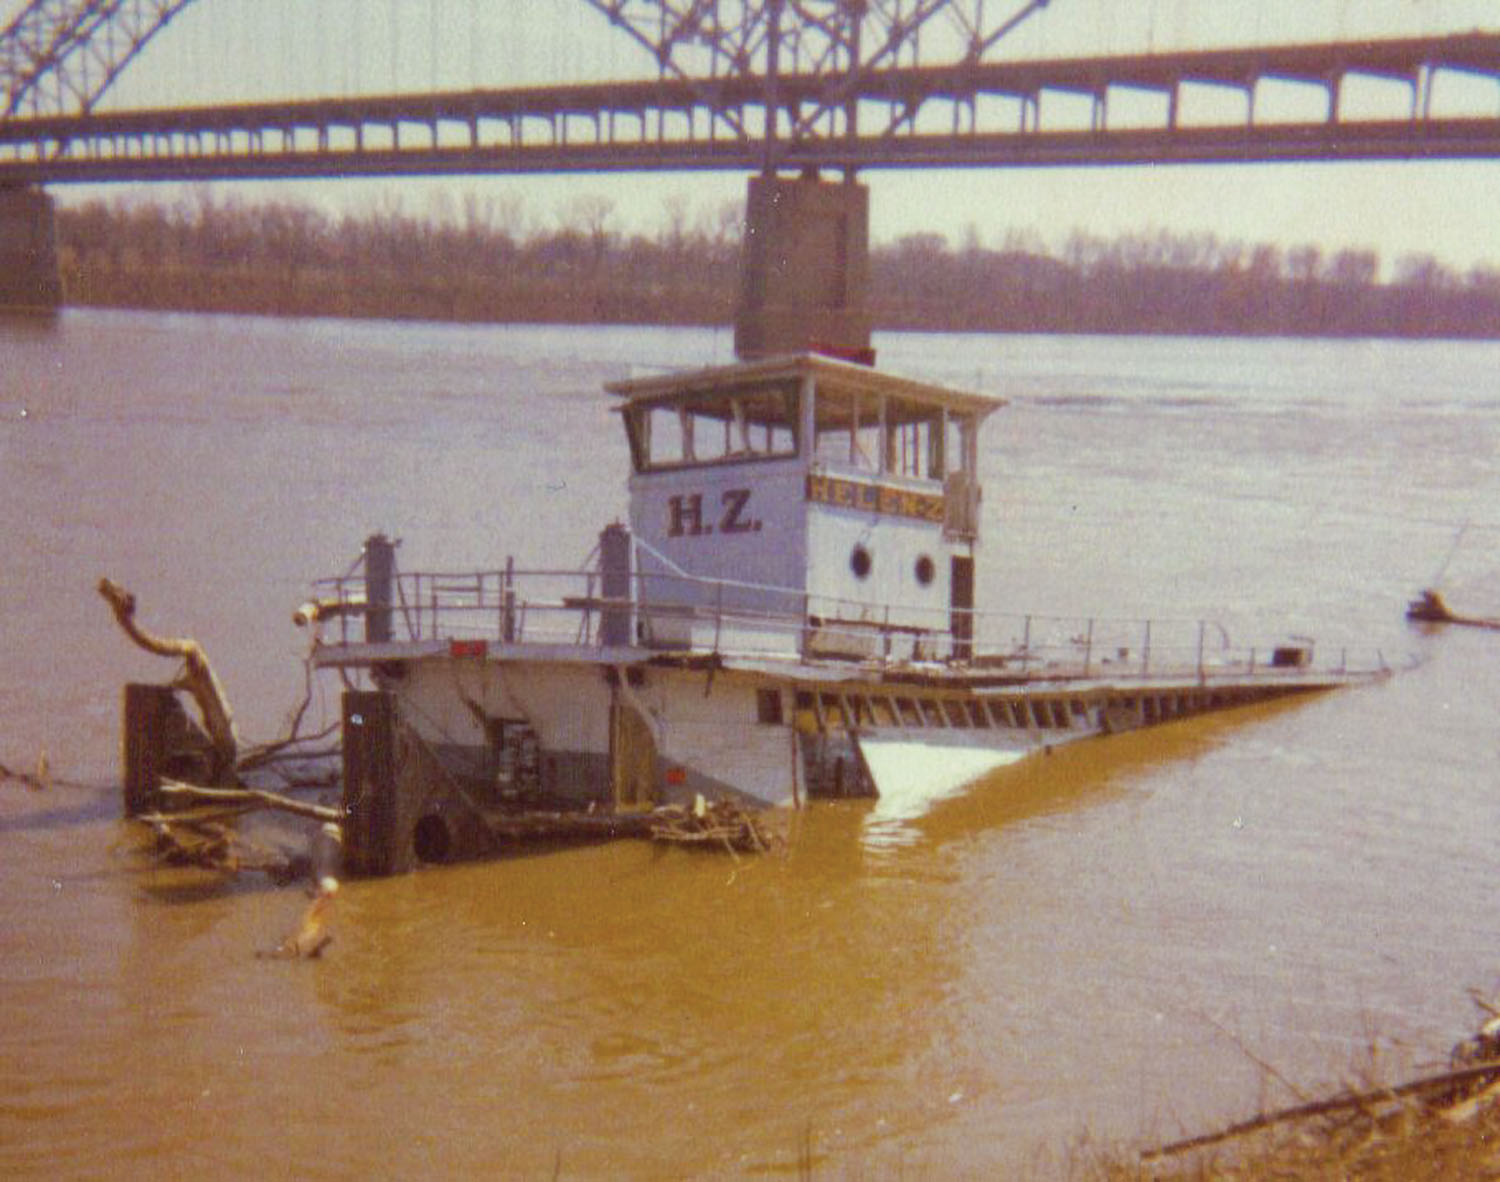 The Helen Z sunk at the New Albany waterfront in February 1970.(Photo by Keith Norrington)